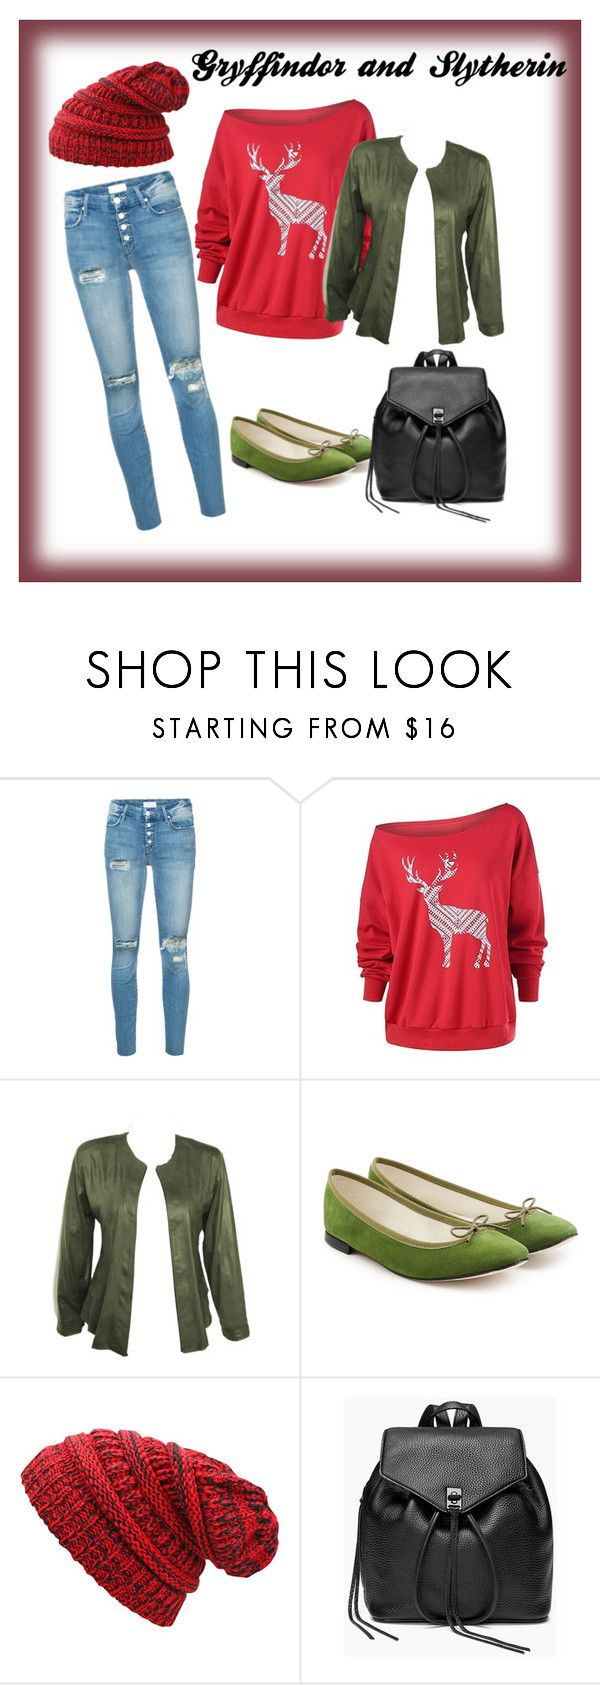 """""""For a Facebook group."""" by lara-claire-du-toit-ail ❤ liked on Polyvore featuring Mother, Repetto and Rebecca Minkoff"""